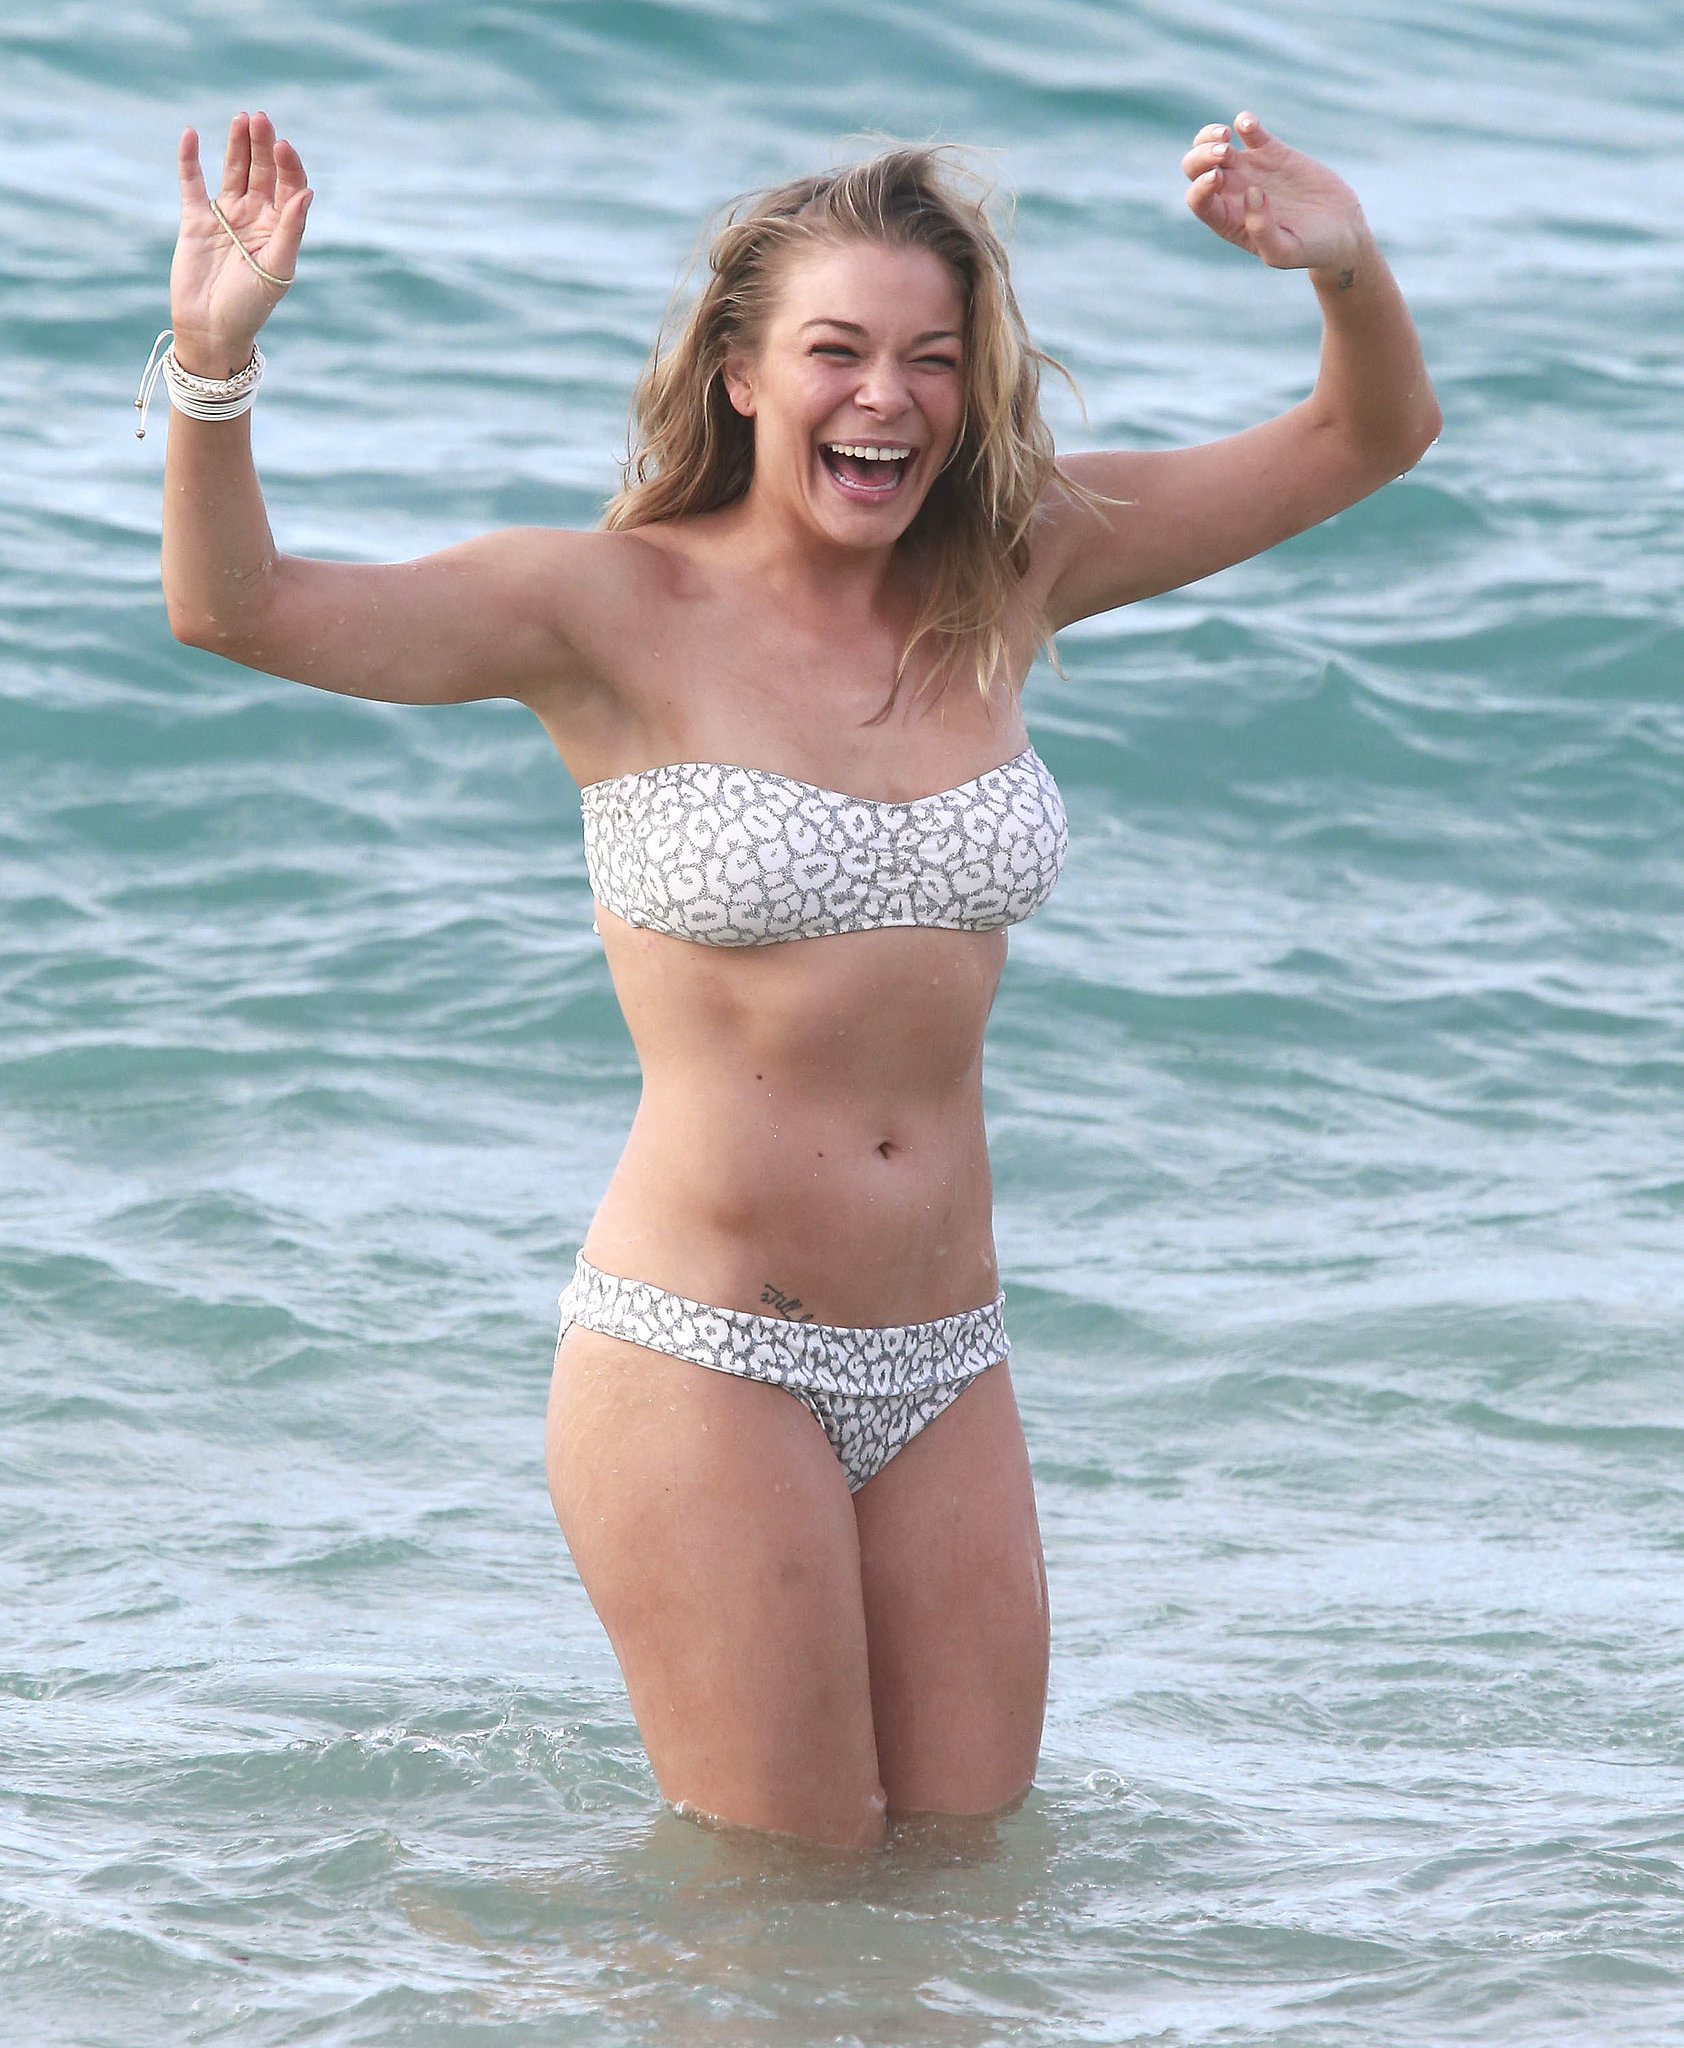 LeAnn Rimes hit the water in Hawaii in January 2014 in a white number.